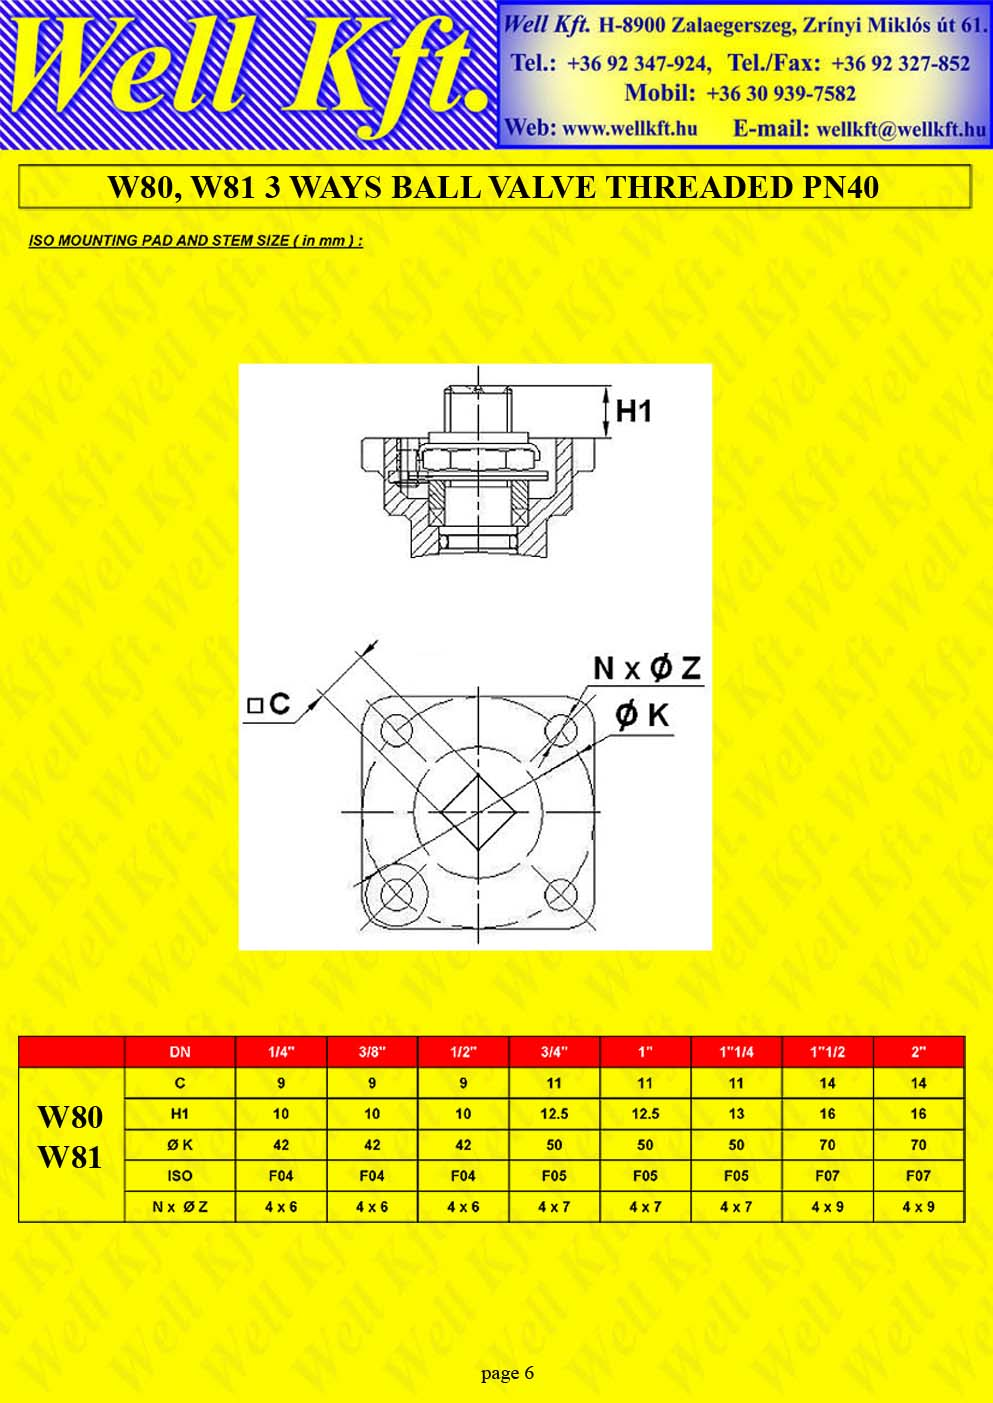 3 ways ball valve stainless steel threaded PN 40 (6.)